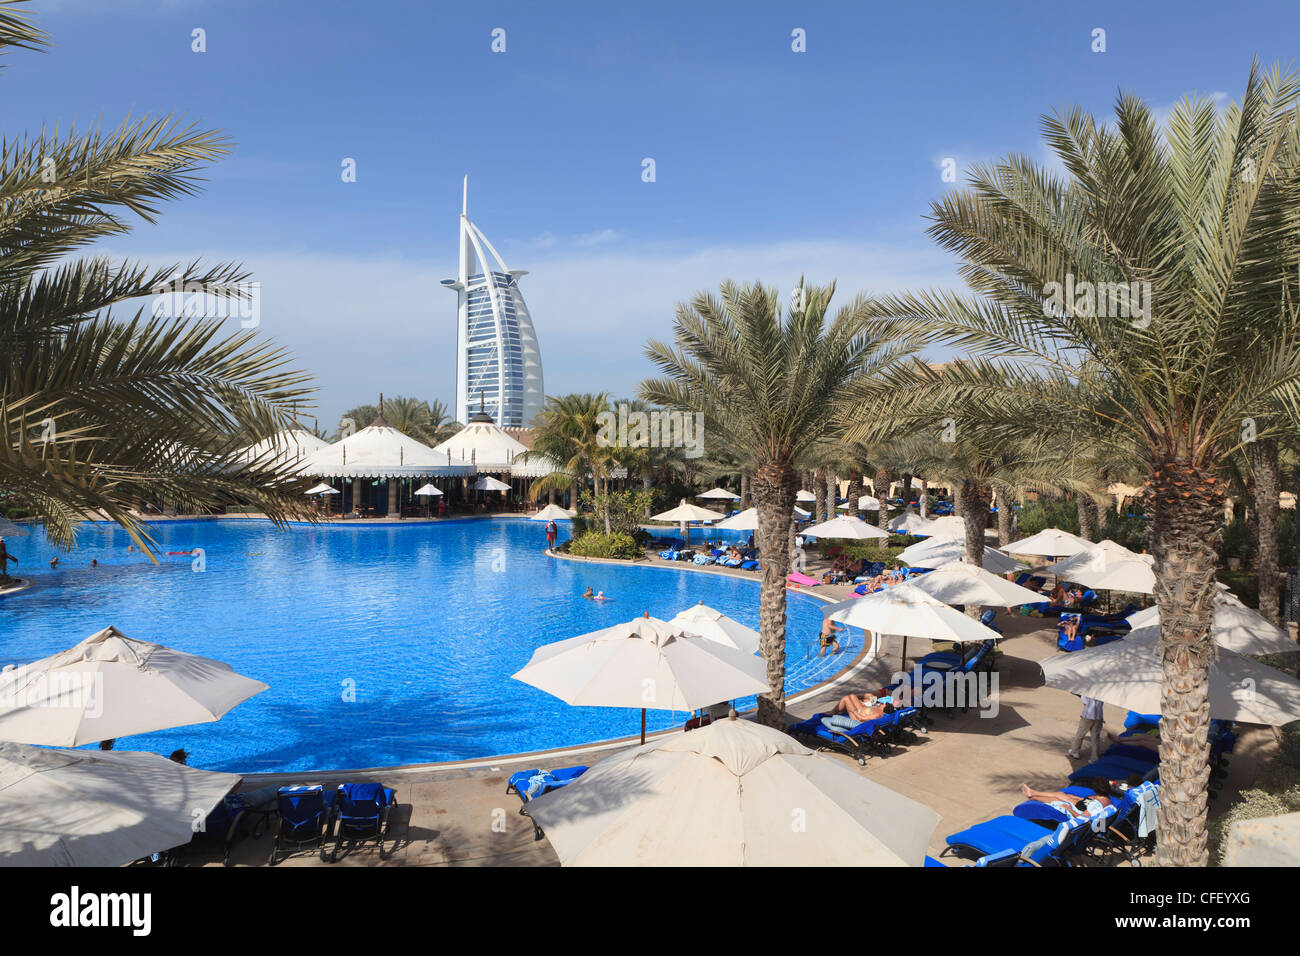 Burj Al Arab Seen From The Swimming Pool Of The Madinat Jumeirah Stock Photo Royalty Free Image